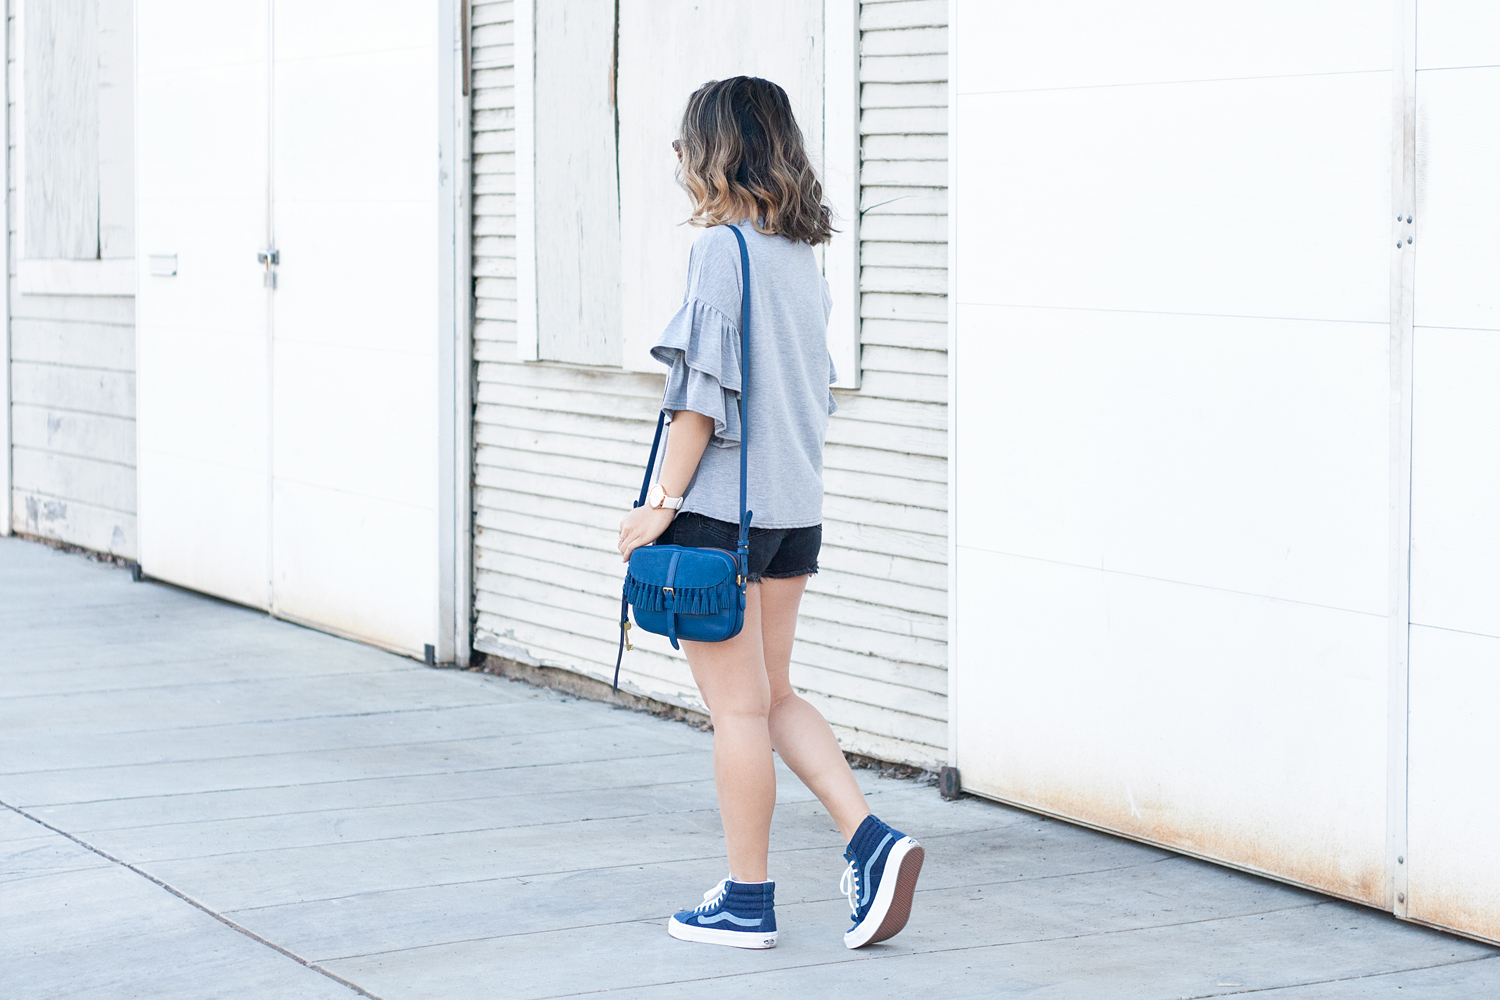 01fossil-blue-madewell-vans-denim-sf-fashion-style